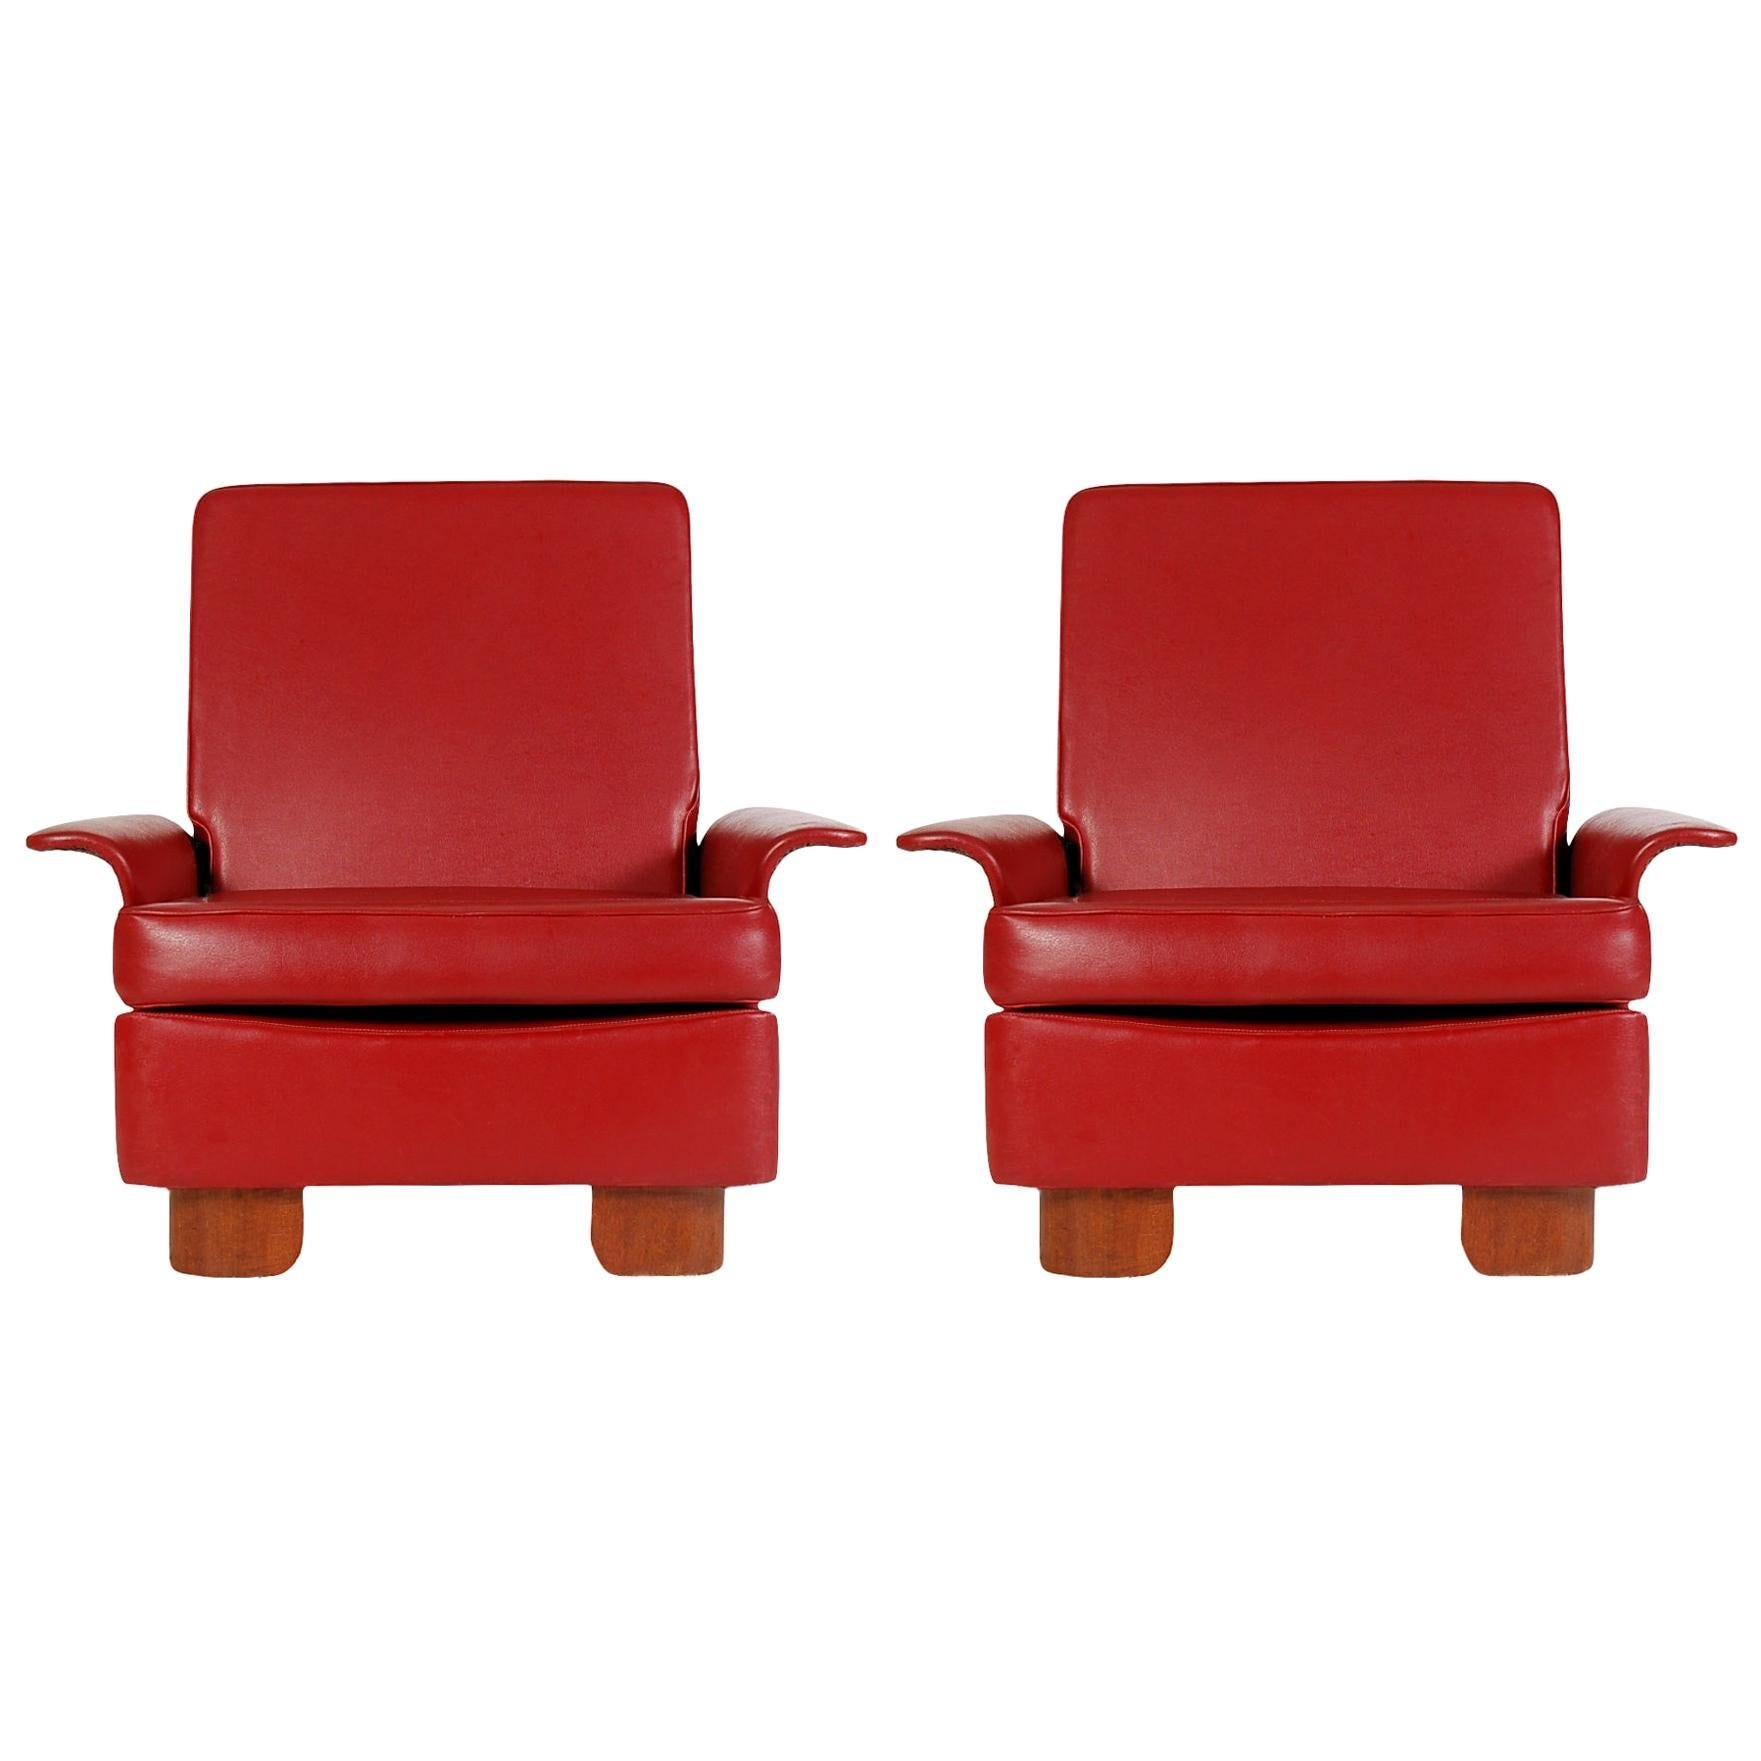 Pair of Midcentury Italian Modern Art Deco Lounge or Club Chairs in Red